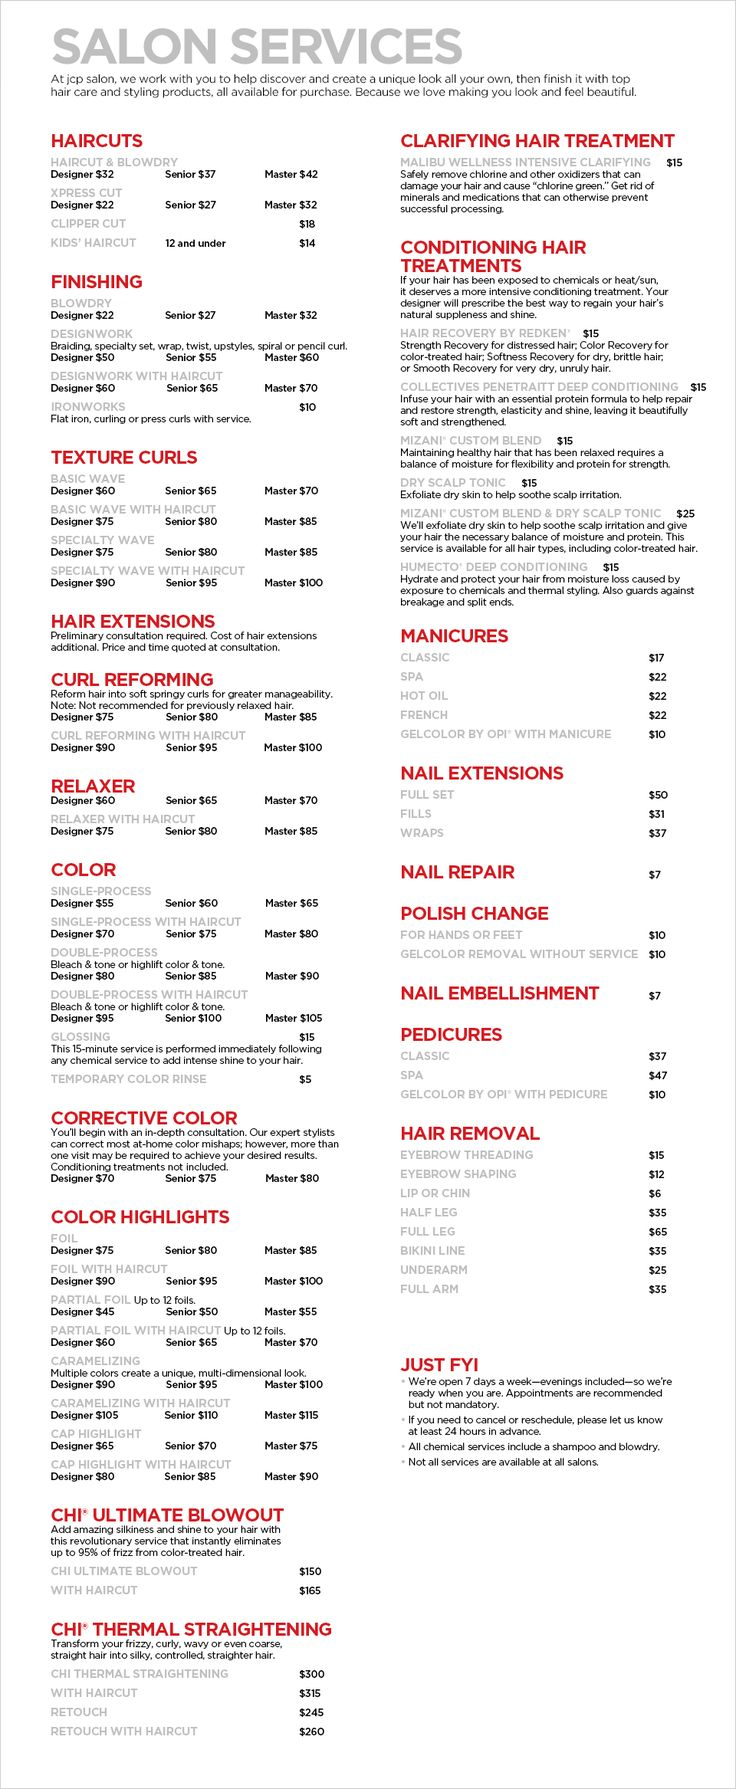 jcp Salon Services - Haircuts, Manicures, Pedicures, & Corrective Coloring - JCPenney